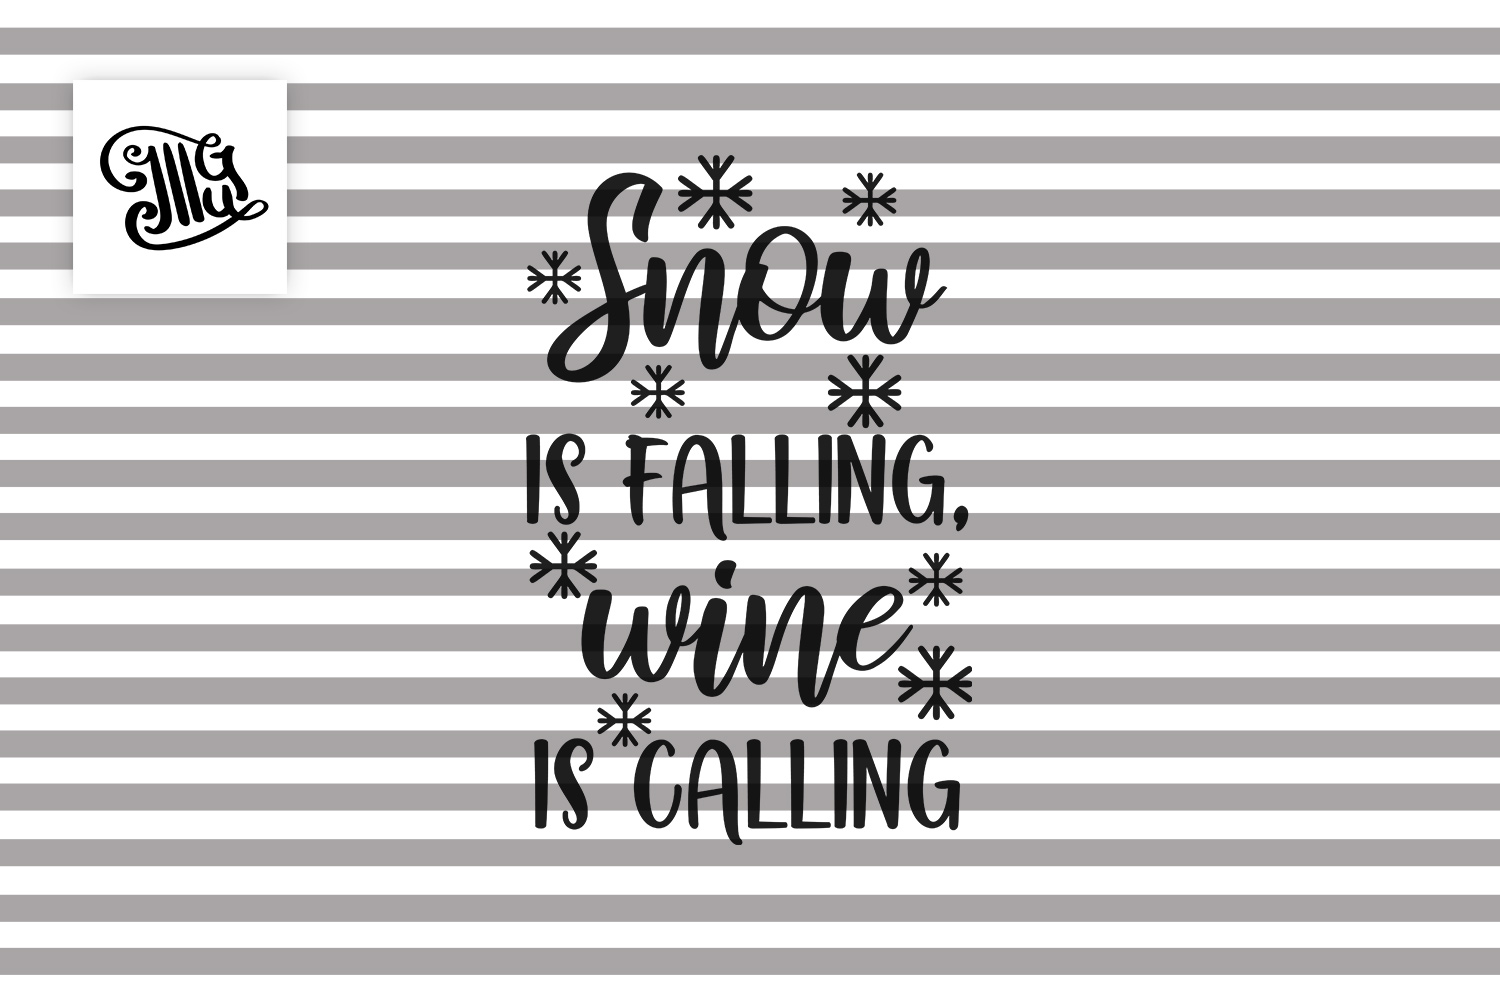 Snow is falling, wine is calling - Christmas wine example image 2